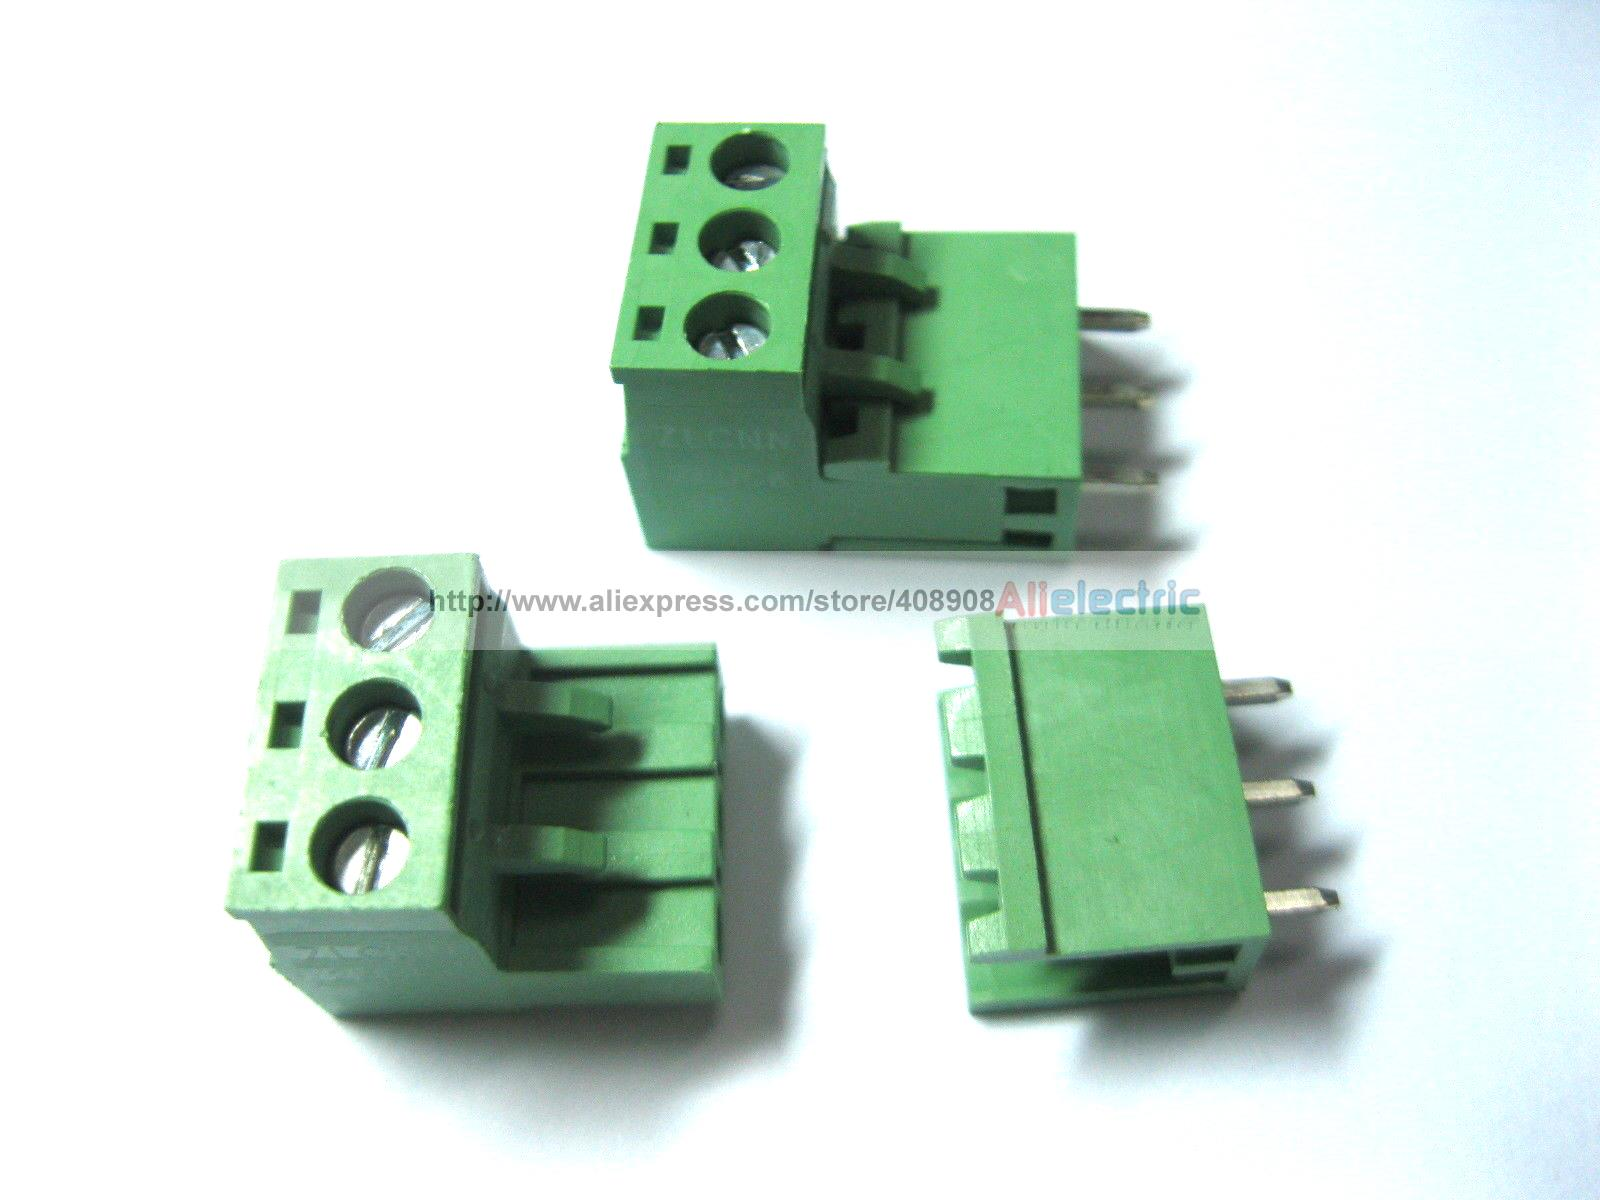 60 Pcs Green 3 Pin 5.08mm Screw Terminal Block Connector Pluggable Type 30 pcs 5 08mm angle 16 pin screw terminal block connector pluggable type green